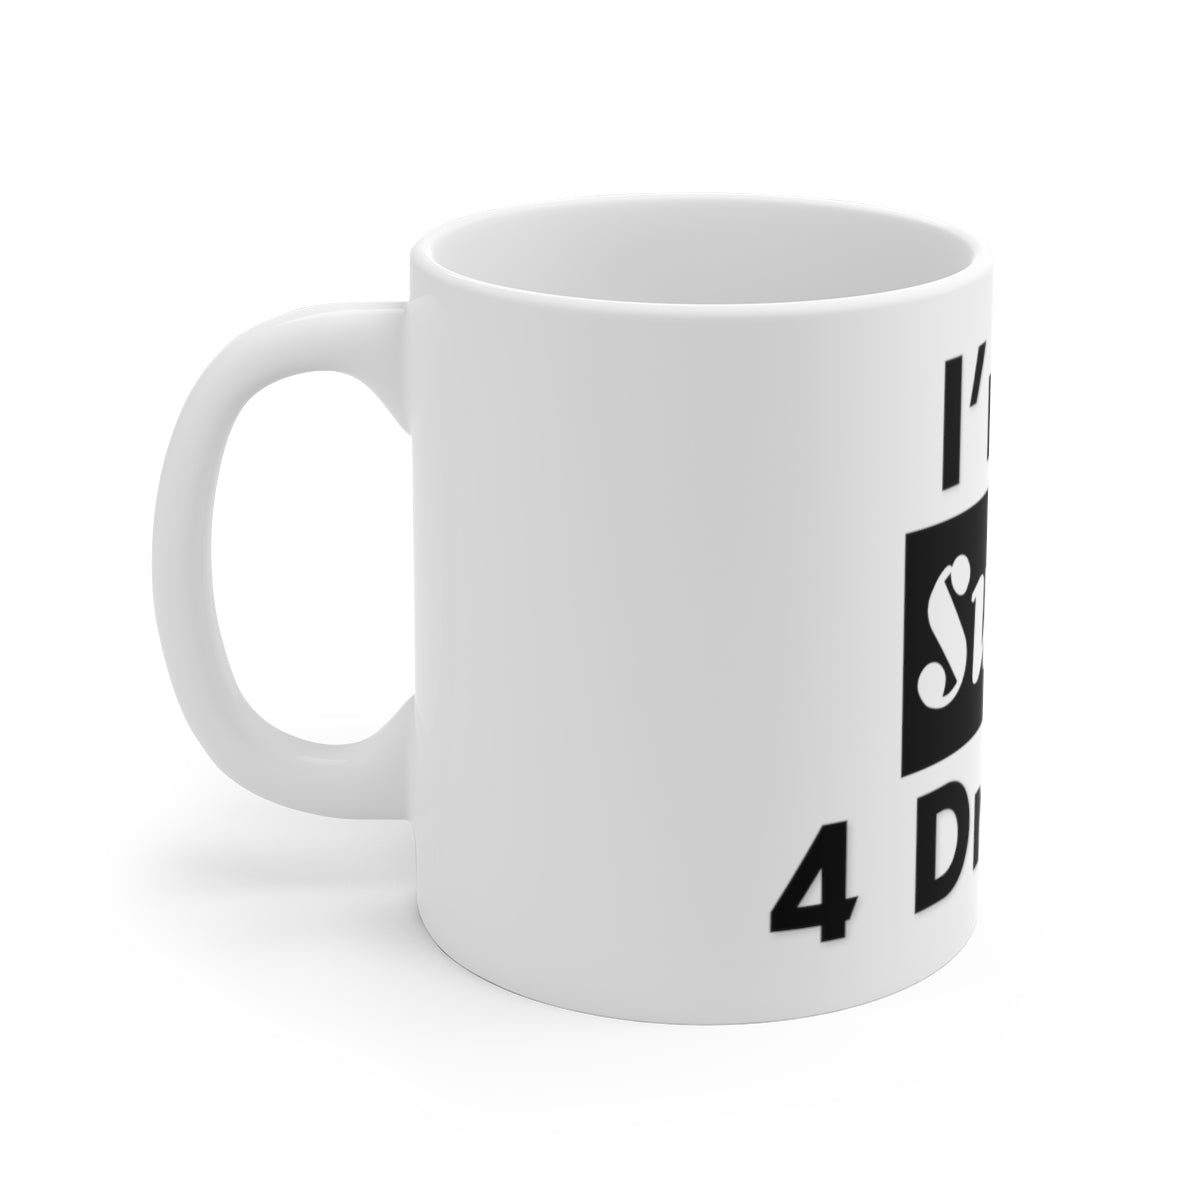 Sassy & Swag Collections - I'm 2 Swag 4 Drama White Ceramic Mug